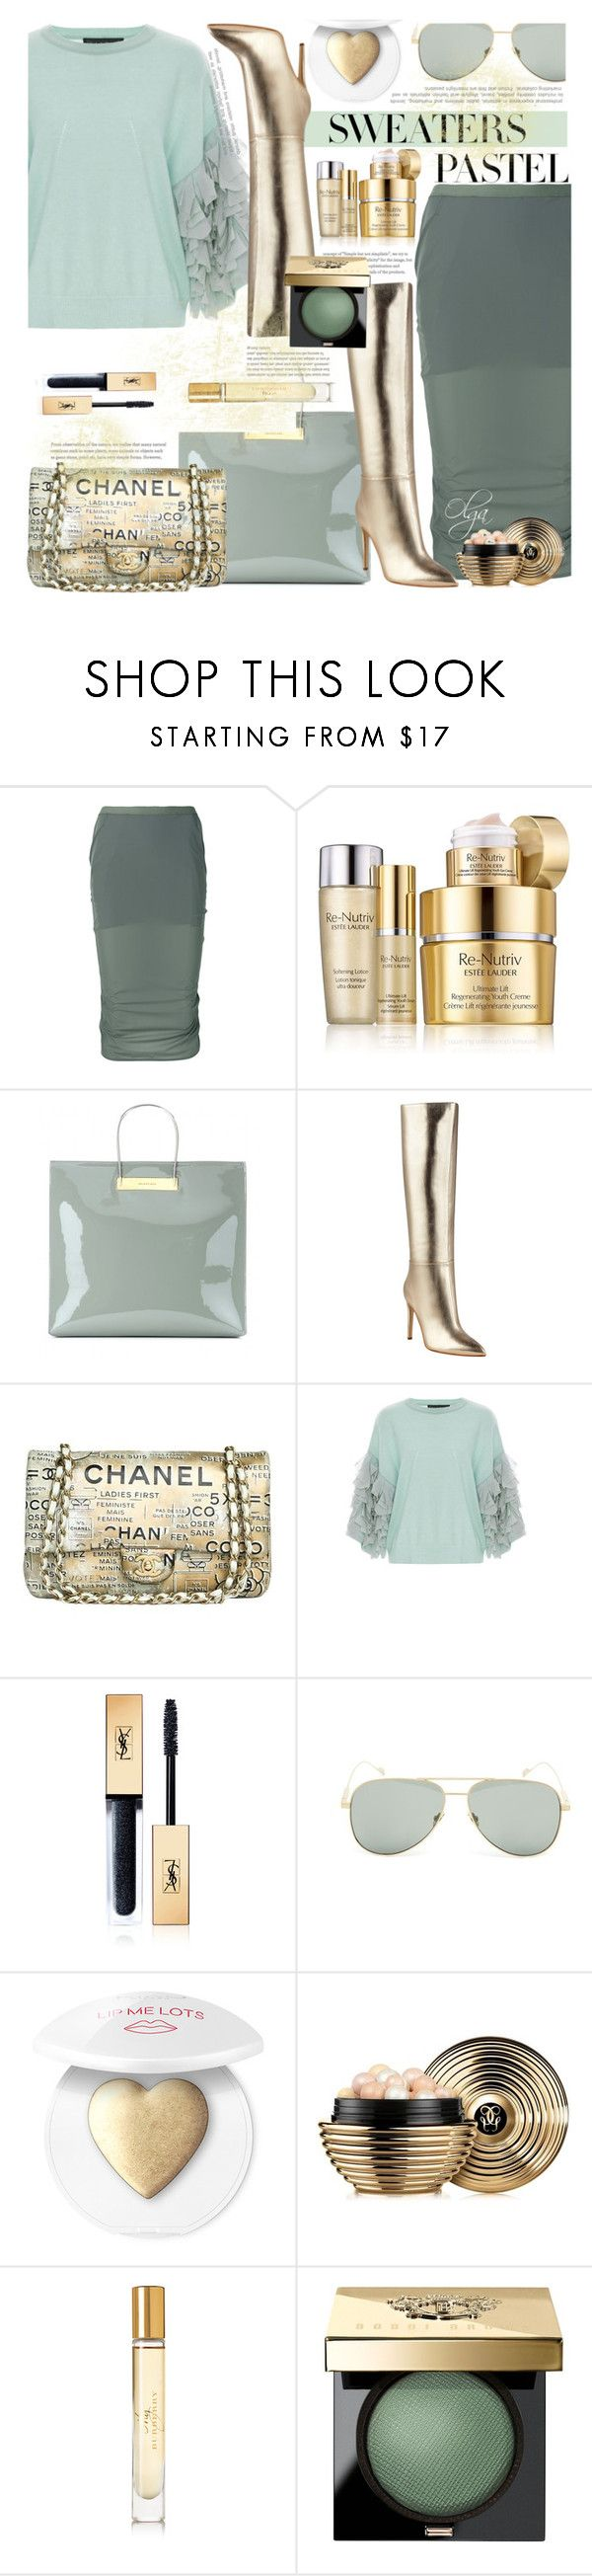 """Mint for Spring"" by olga1402 on Polyvore featuring Rick Owens, Estée Lauder, Balenciaga, GUESS, Chanel, Tabula Rasa, Yves Saint Laurent, Guerlain, Burberry and Bobbi Brown Cosmetics"